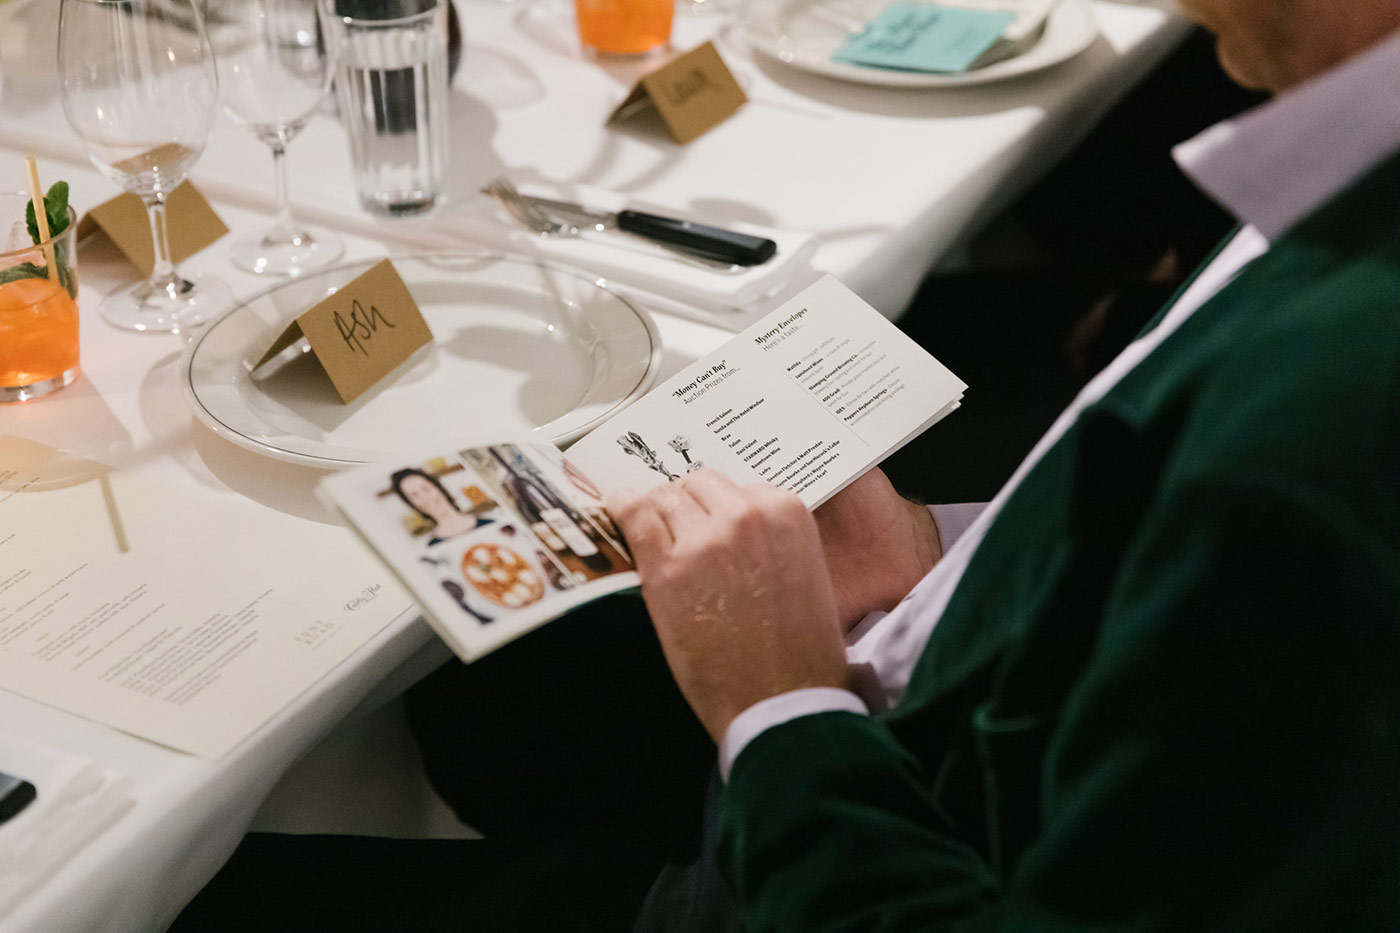 Diners look through the printed catalogue for auction prizes